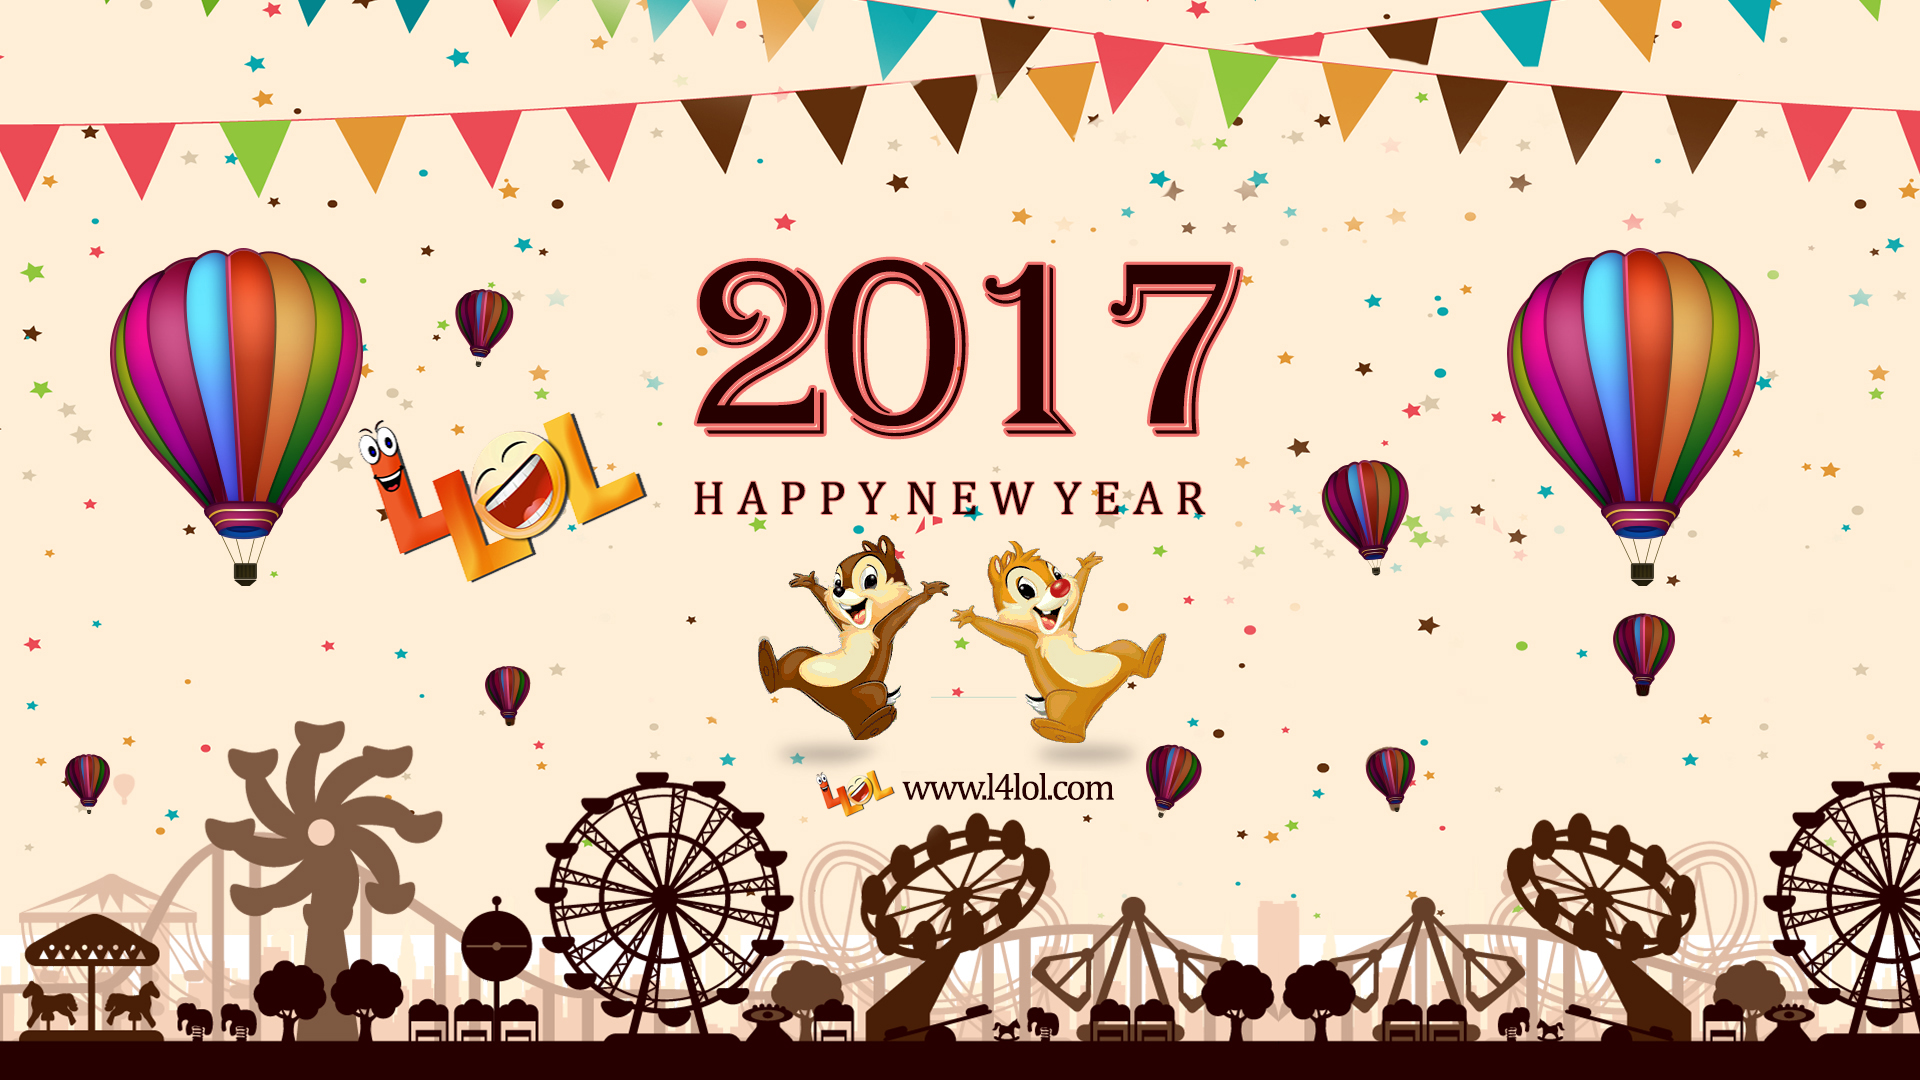 happy new year images quotes wishes